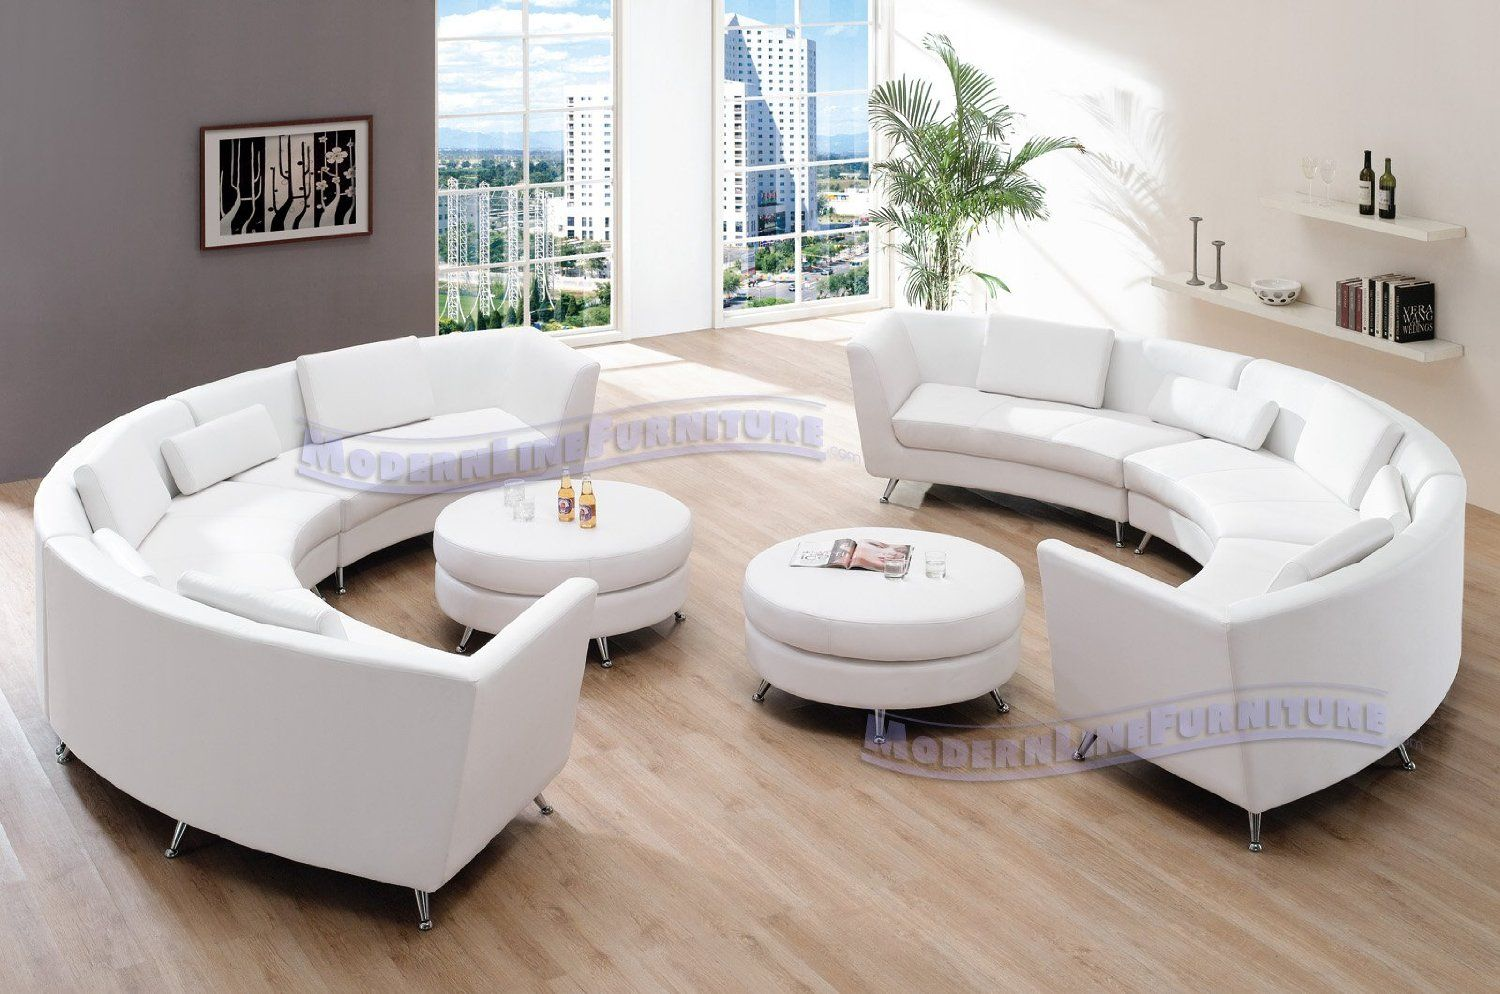 white leather living room set. Amazon com  Exclusive Modern Furniture VIP Sectional with Two White Leather Sofas and 2 Living Room